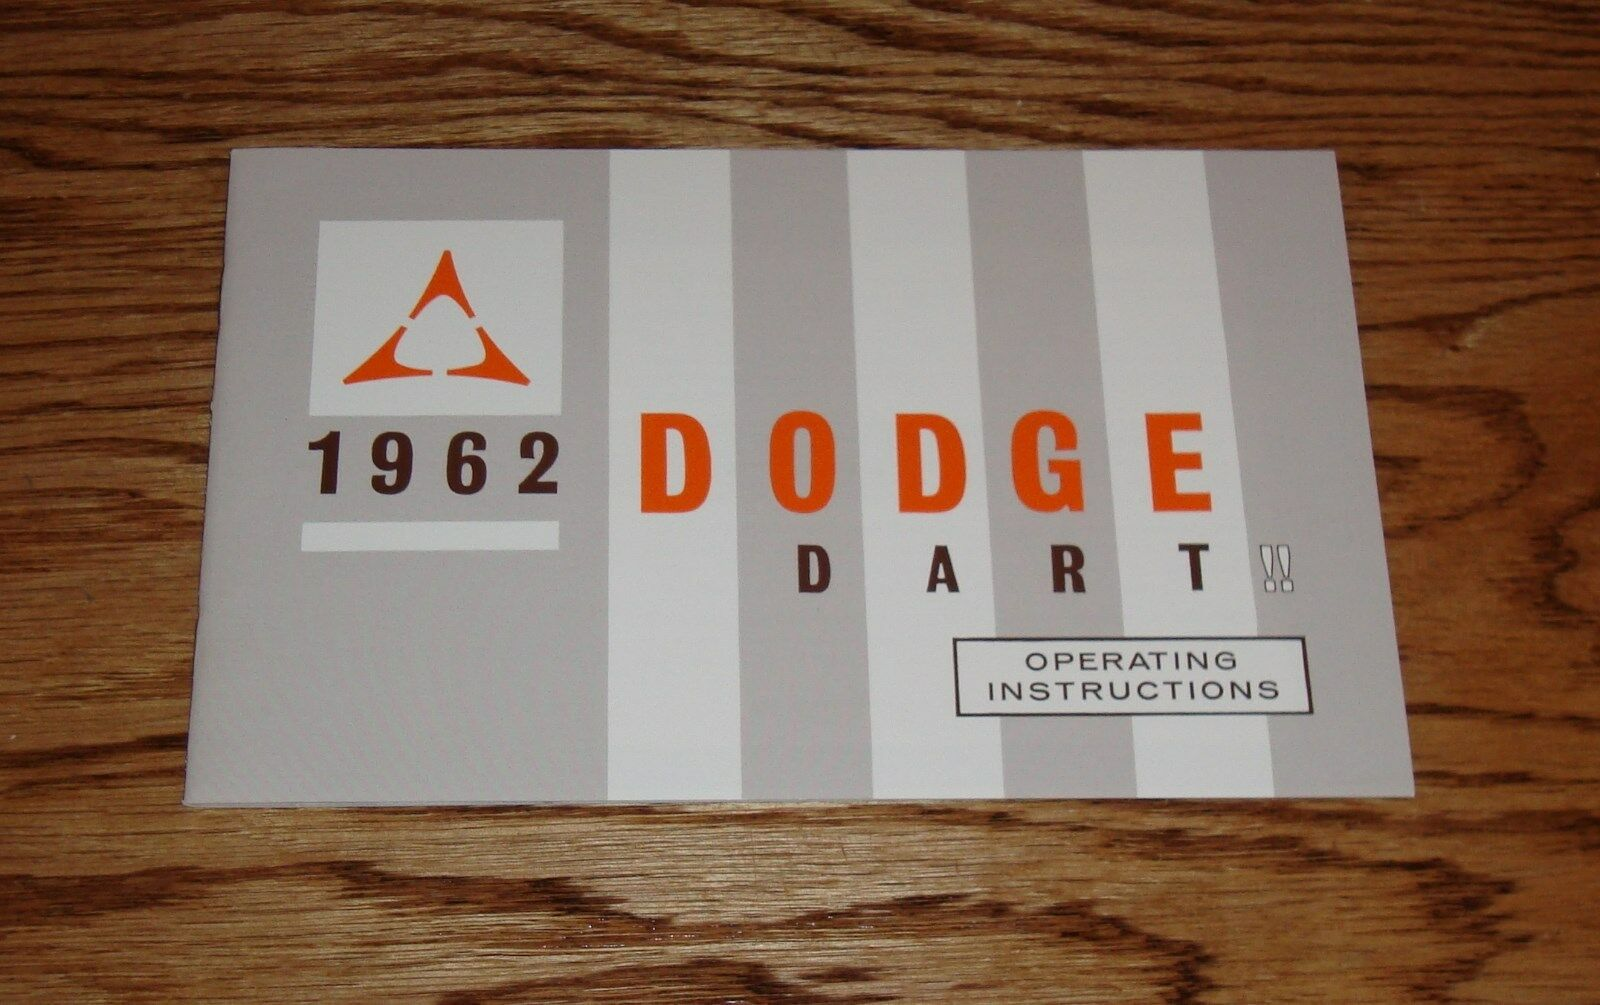 1962 Dodge Dart Owners Operators Manual 62 1350 Picclick Glove Compartment Wiring Diagram For 1953 Studebaker Champion And Commander 1 Of 1only 2 Available